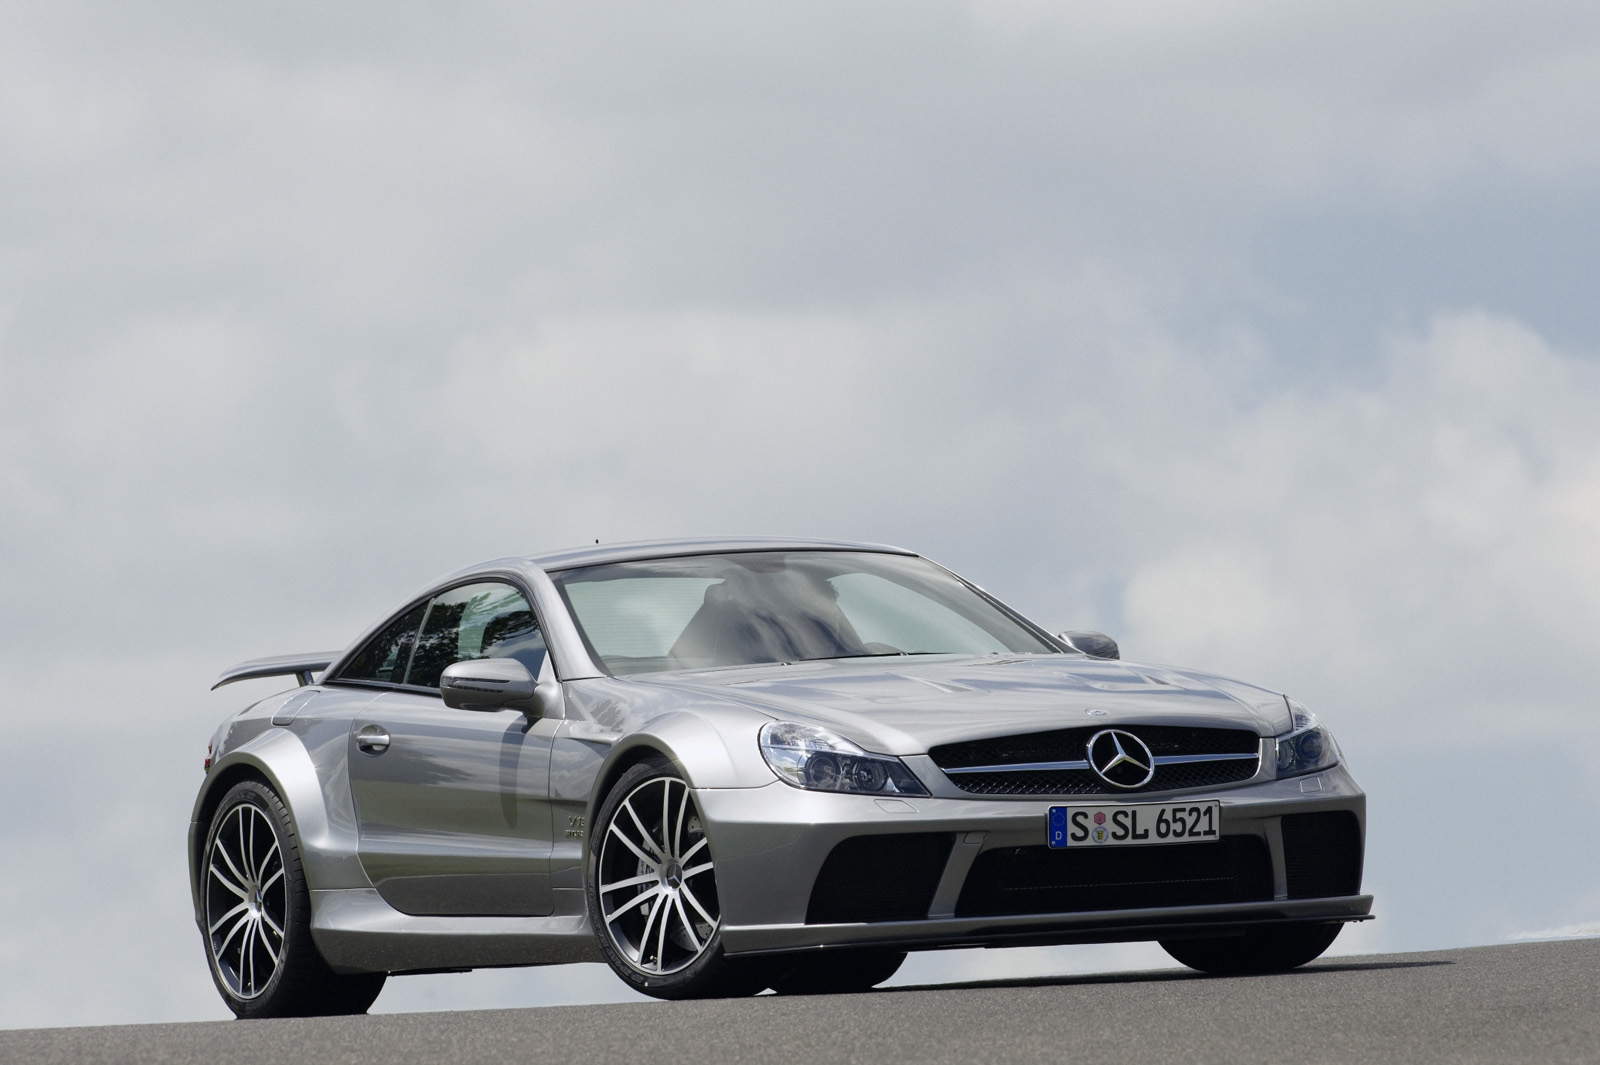 Download This High Resolution Picture of the 2009 Mercedes-Benz SL 65 AMG